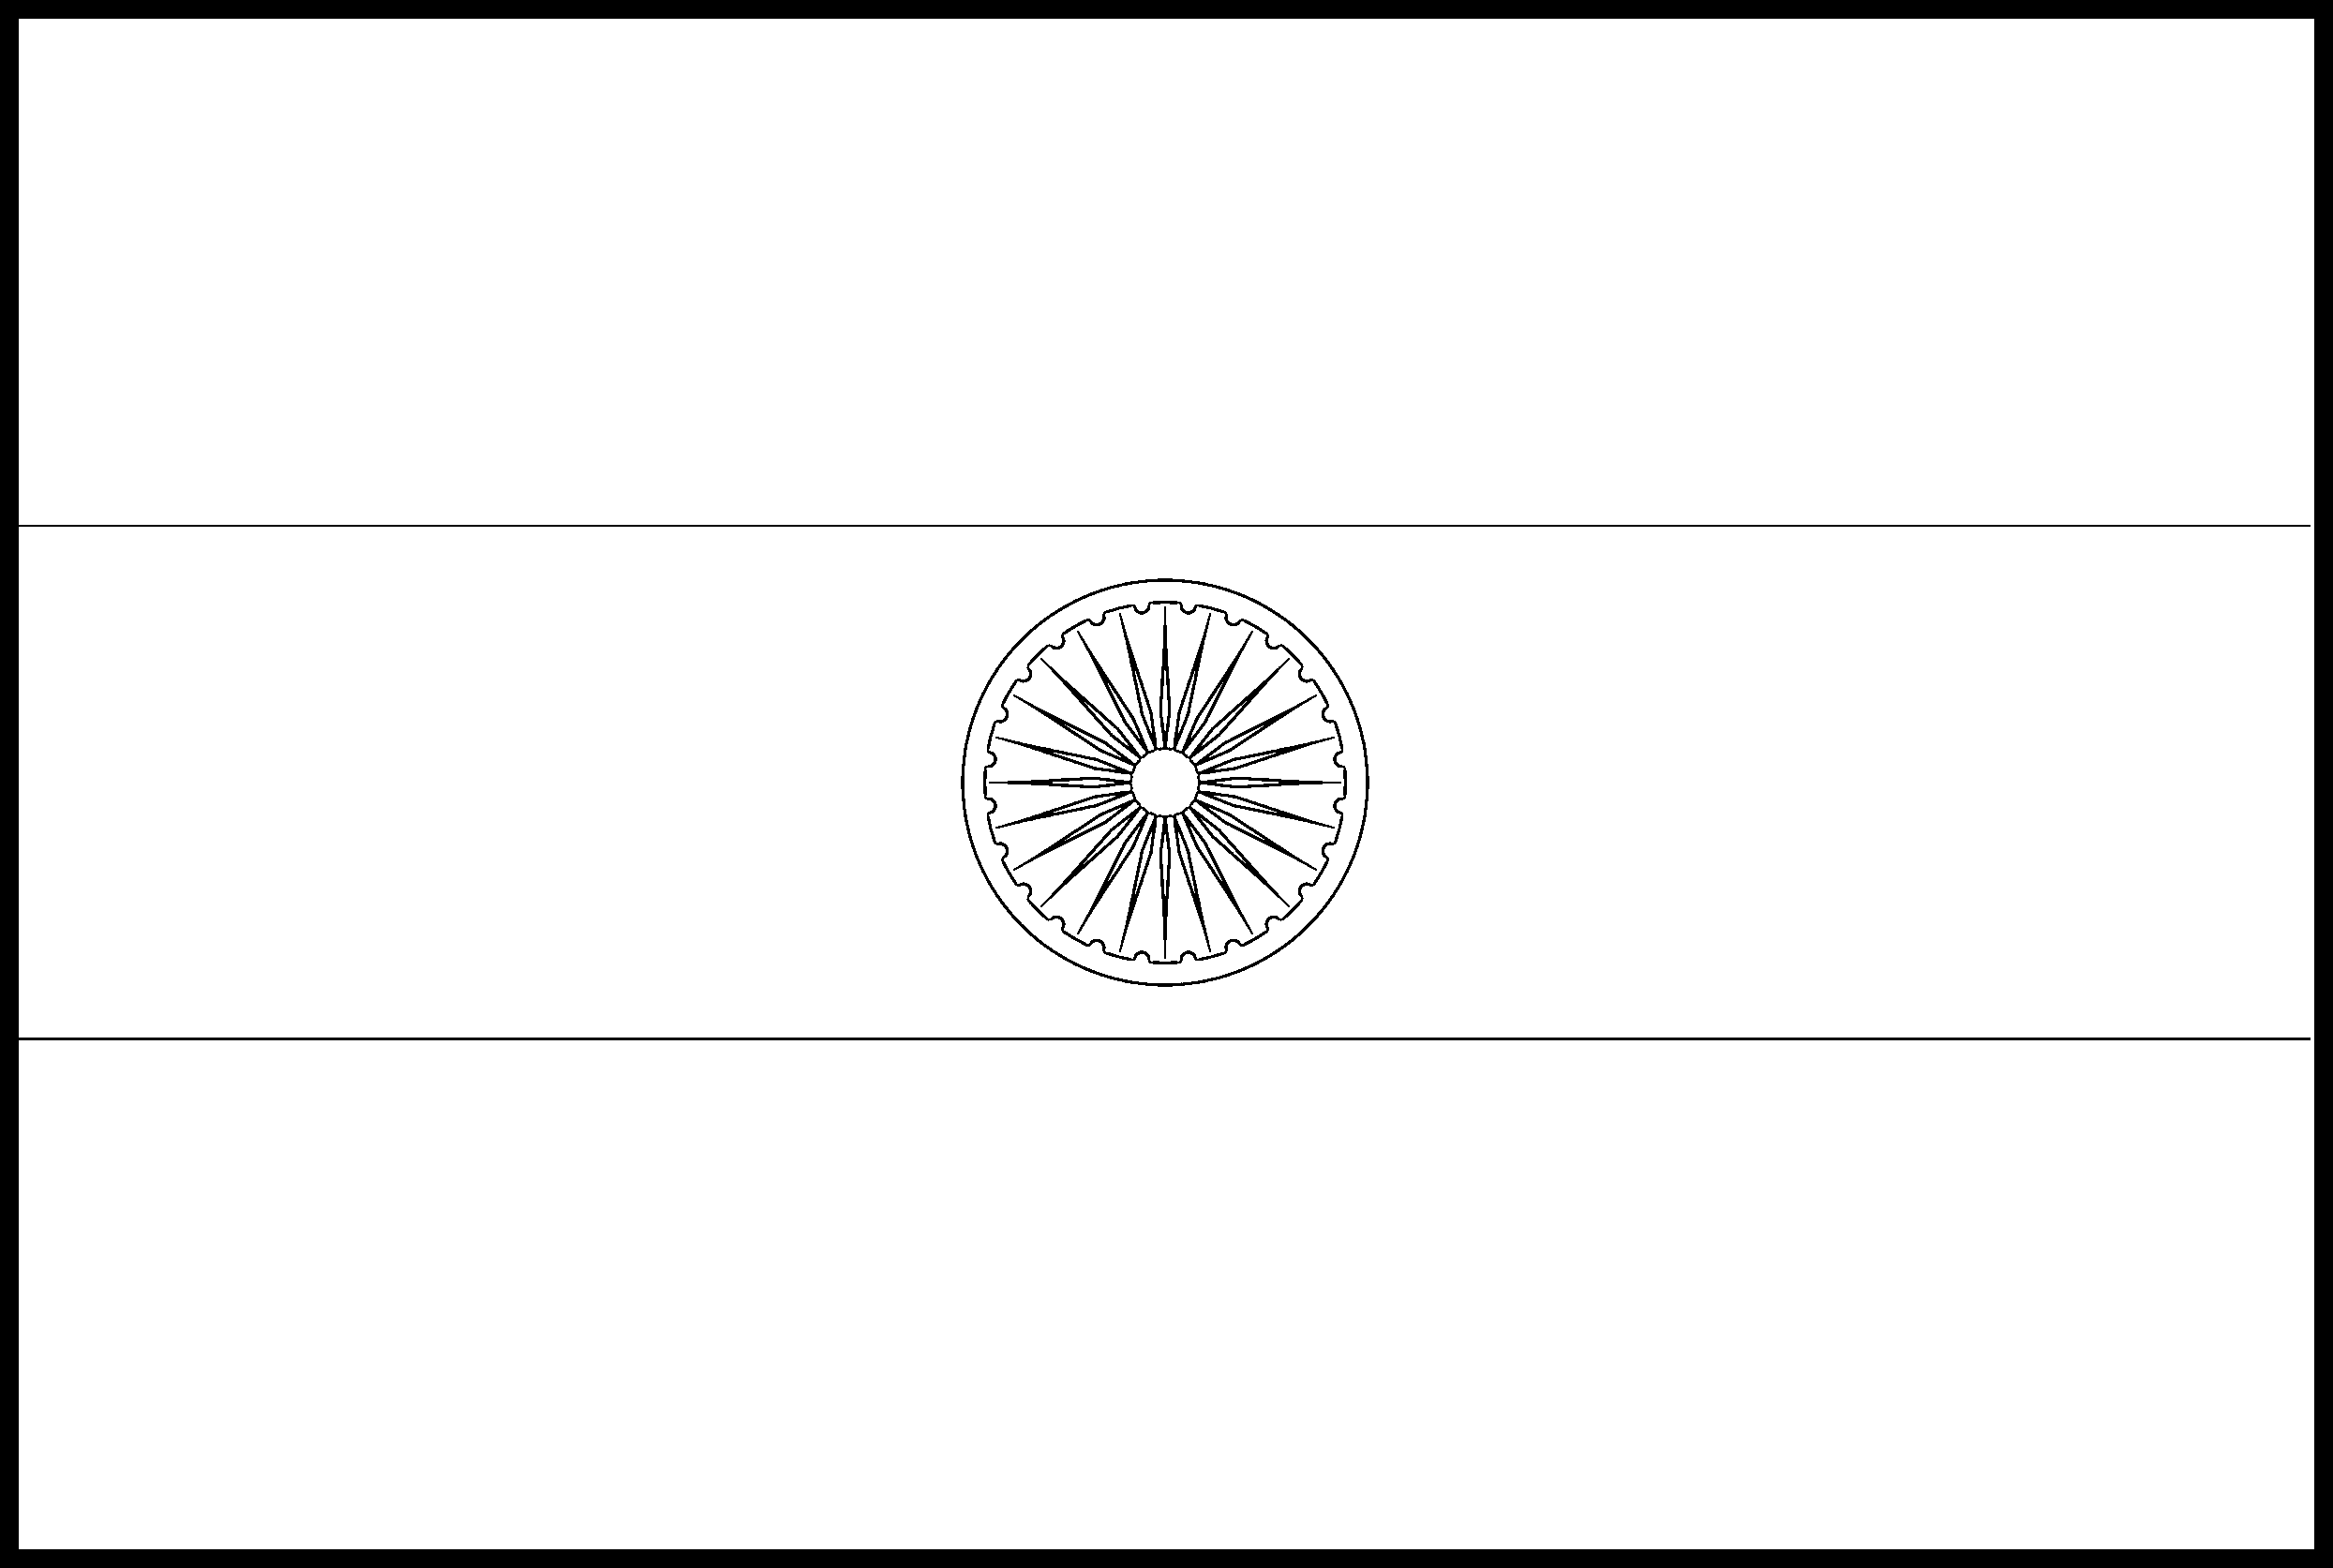 india flag coloring page india flag colouring page flags web coloring india flag page